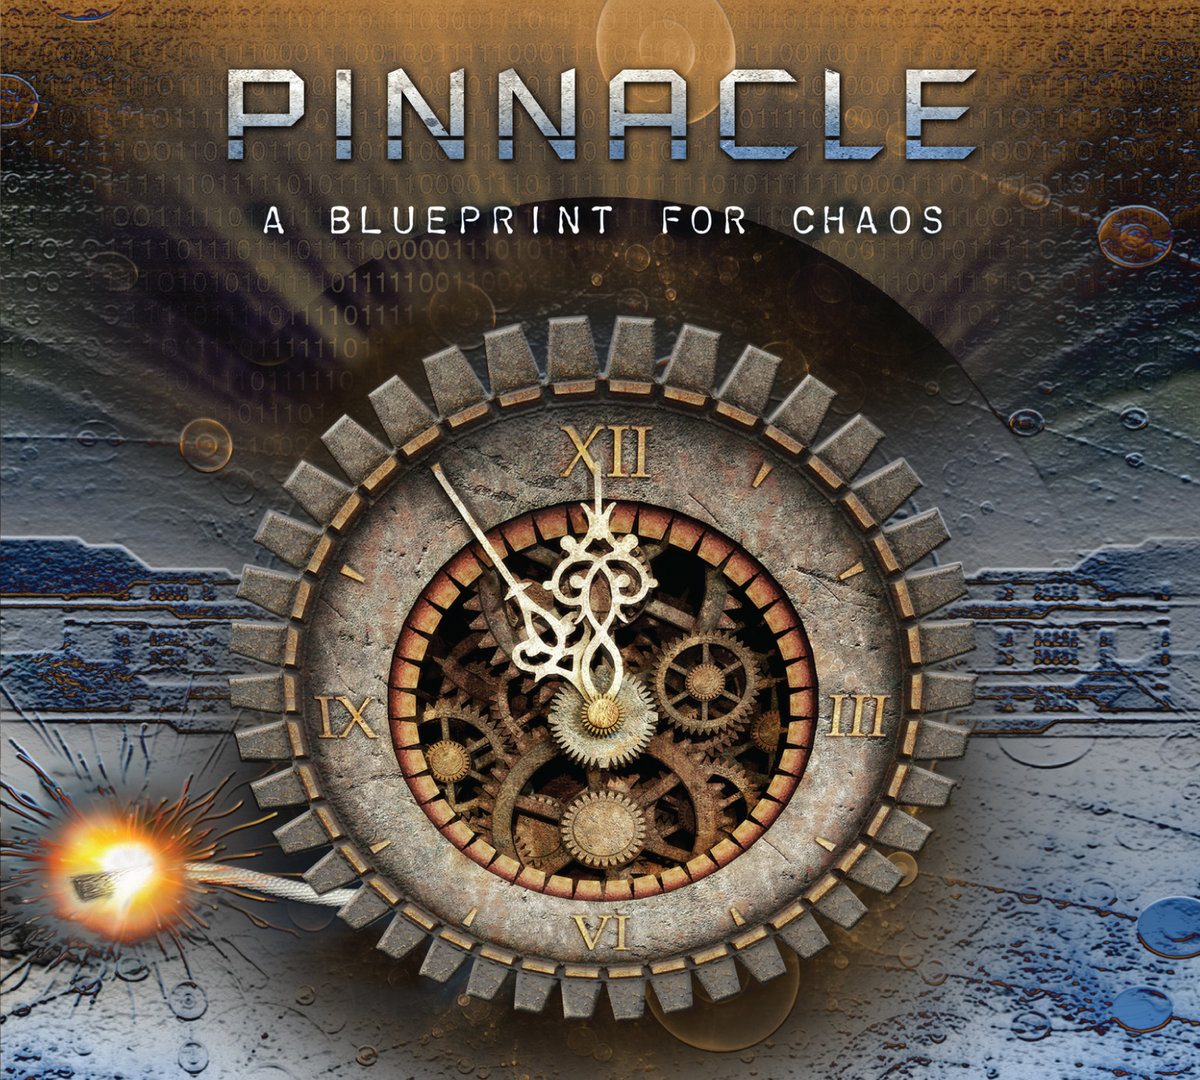 A blueprint for chaos pinnacle by pinnacle malvernweather Images